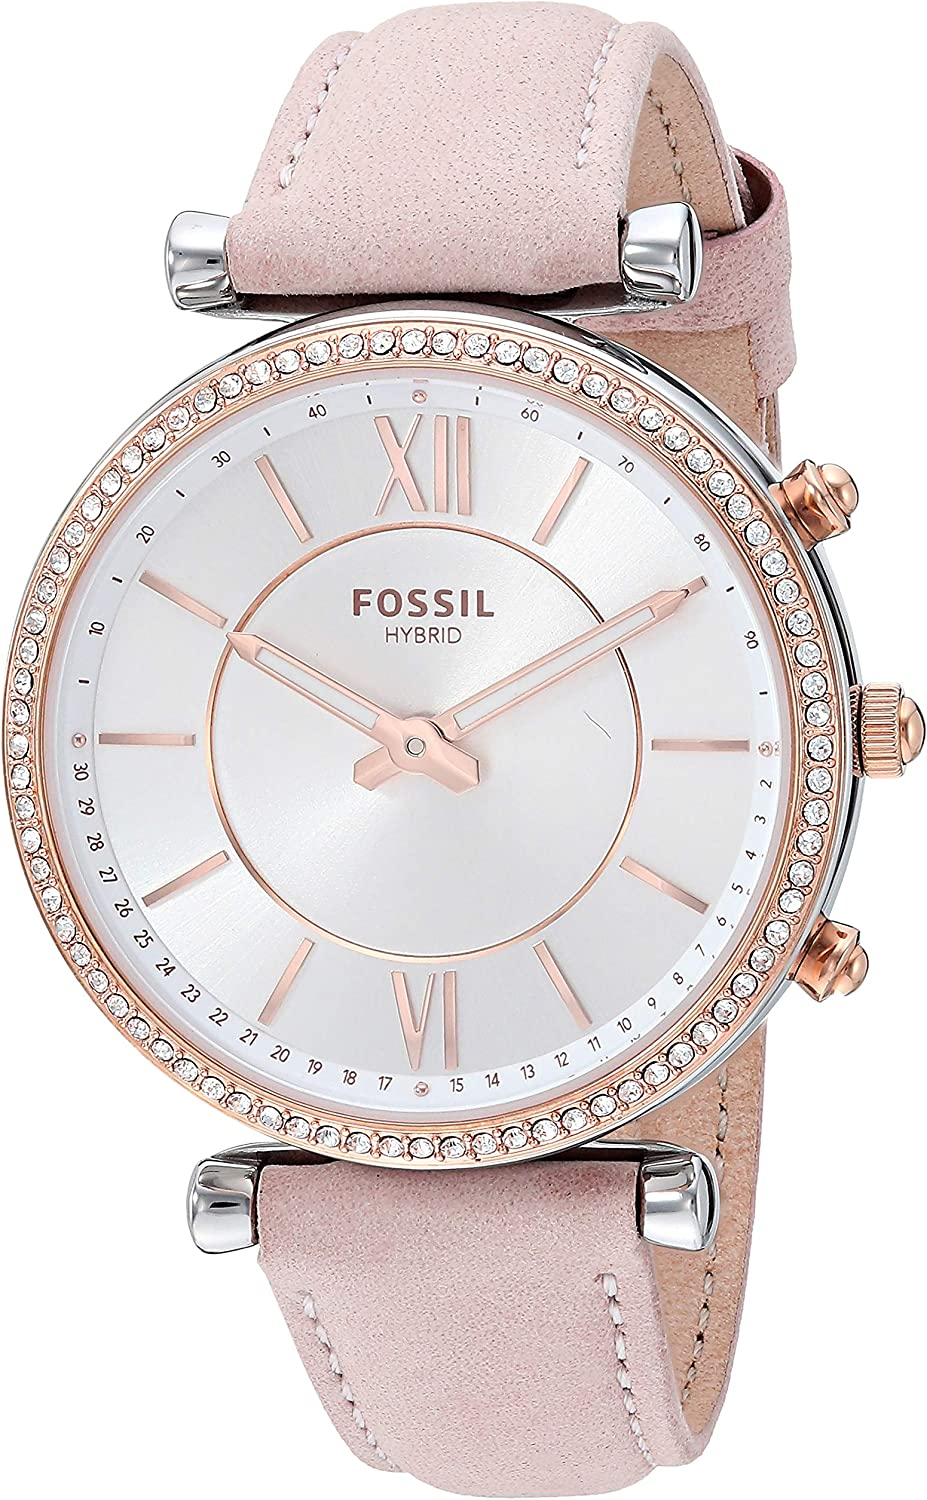 Fossil Womens Carlie Stainless Steel Hybrid Smartwatch with Activity Tracking and Smartphone Notifications